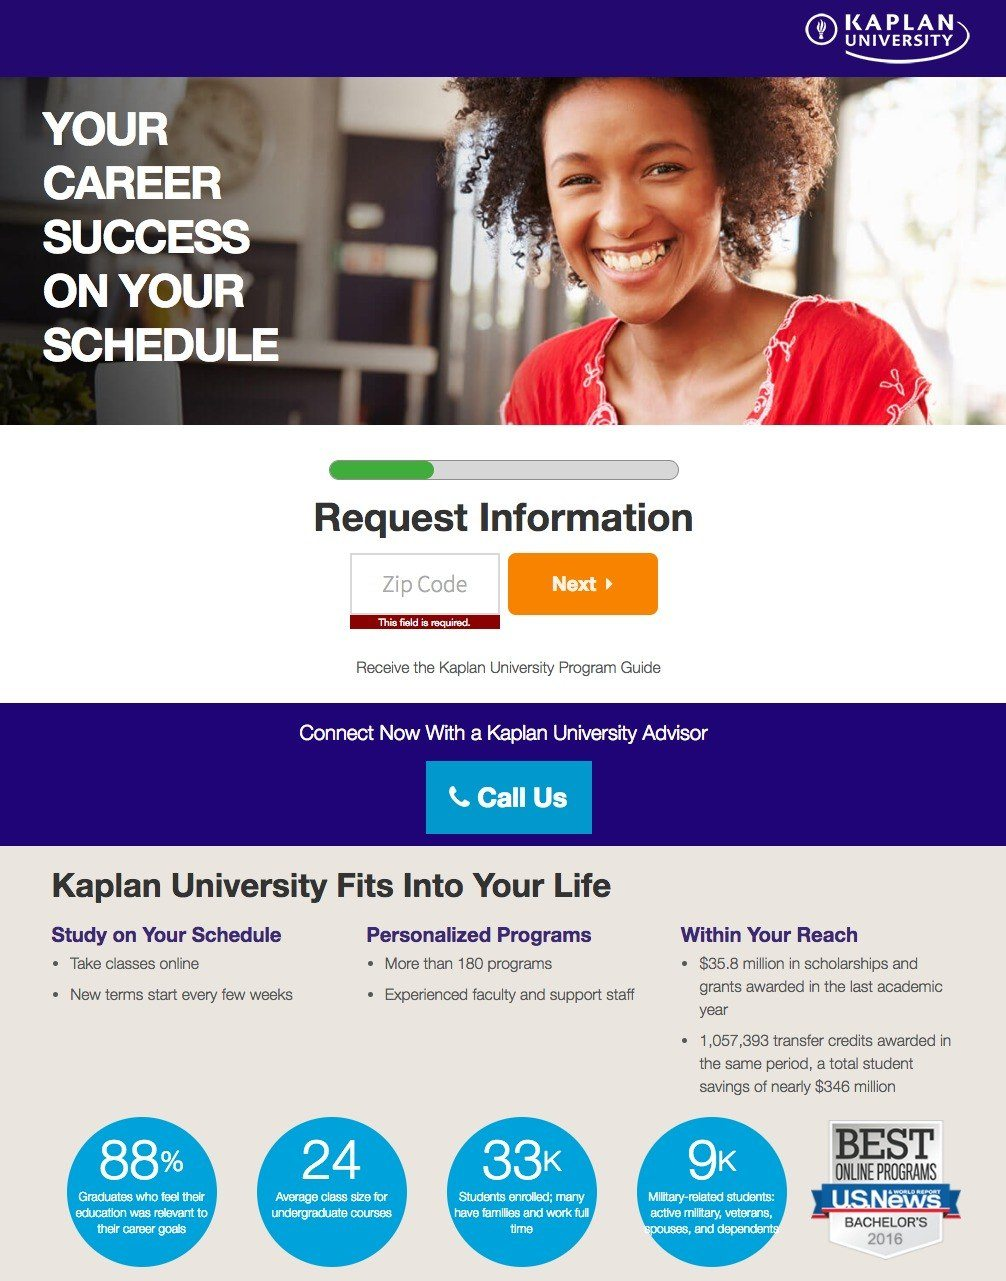 This picture shows marketers how Kaplan University uses an education landing page to generate new student sign ups.